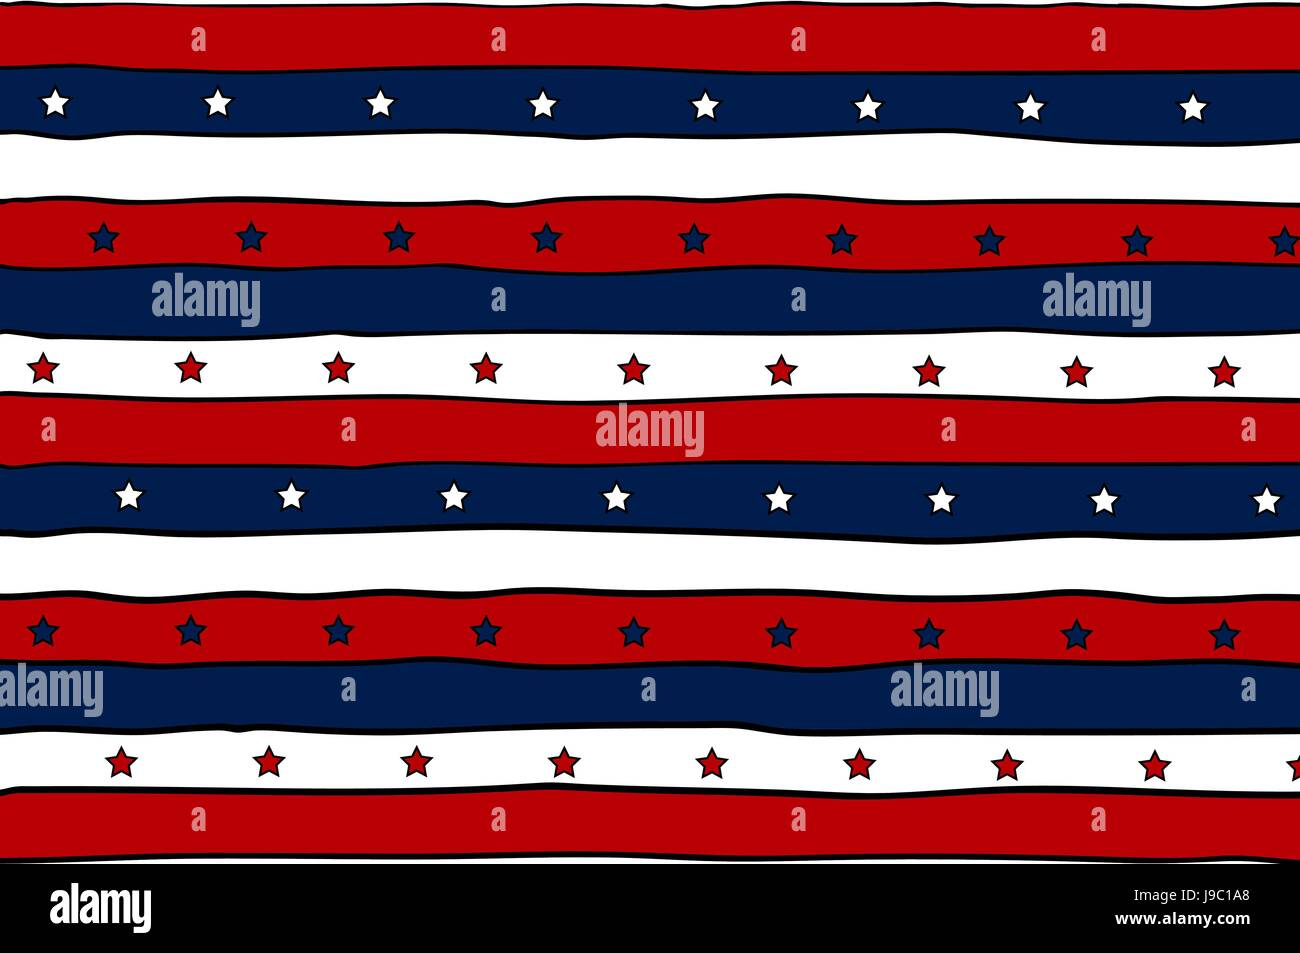 red white and blue striped patriotic background with stars abstract stock vector image art alamy https www alamy com stock photo red white and blue striped patriotic background with stars abstract 143479344 html